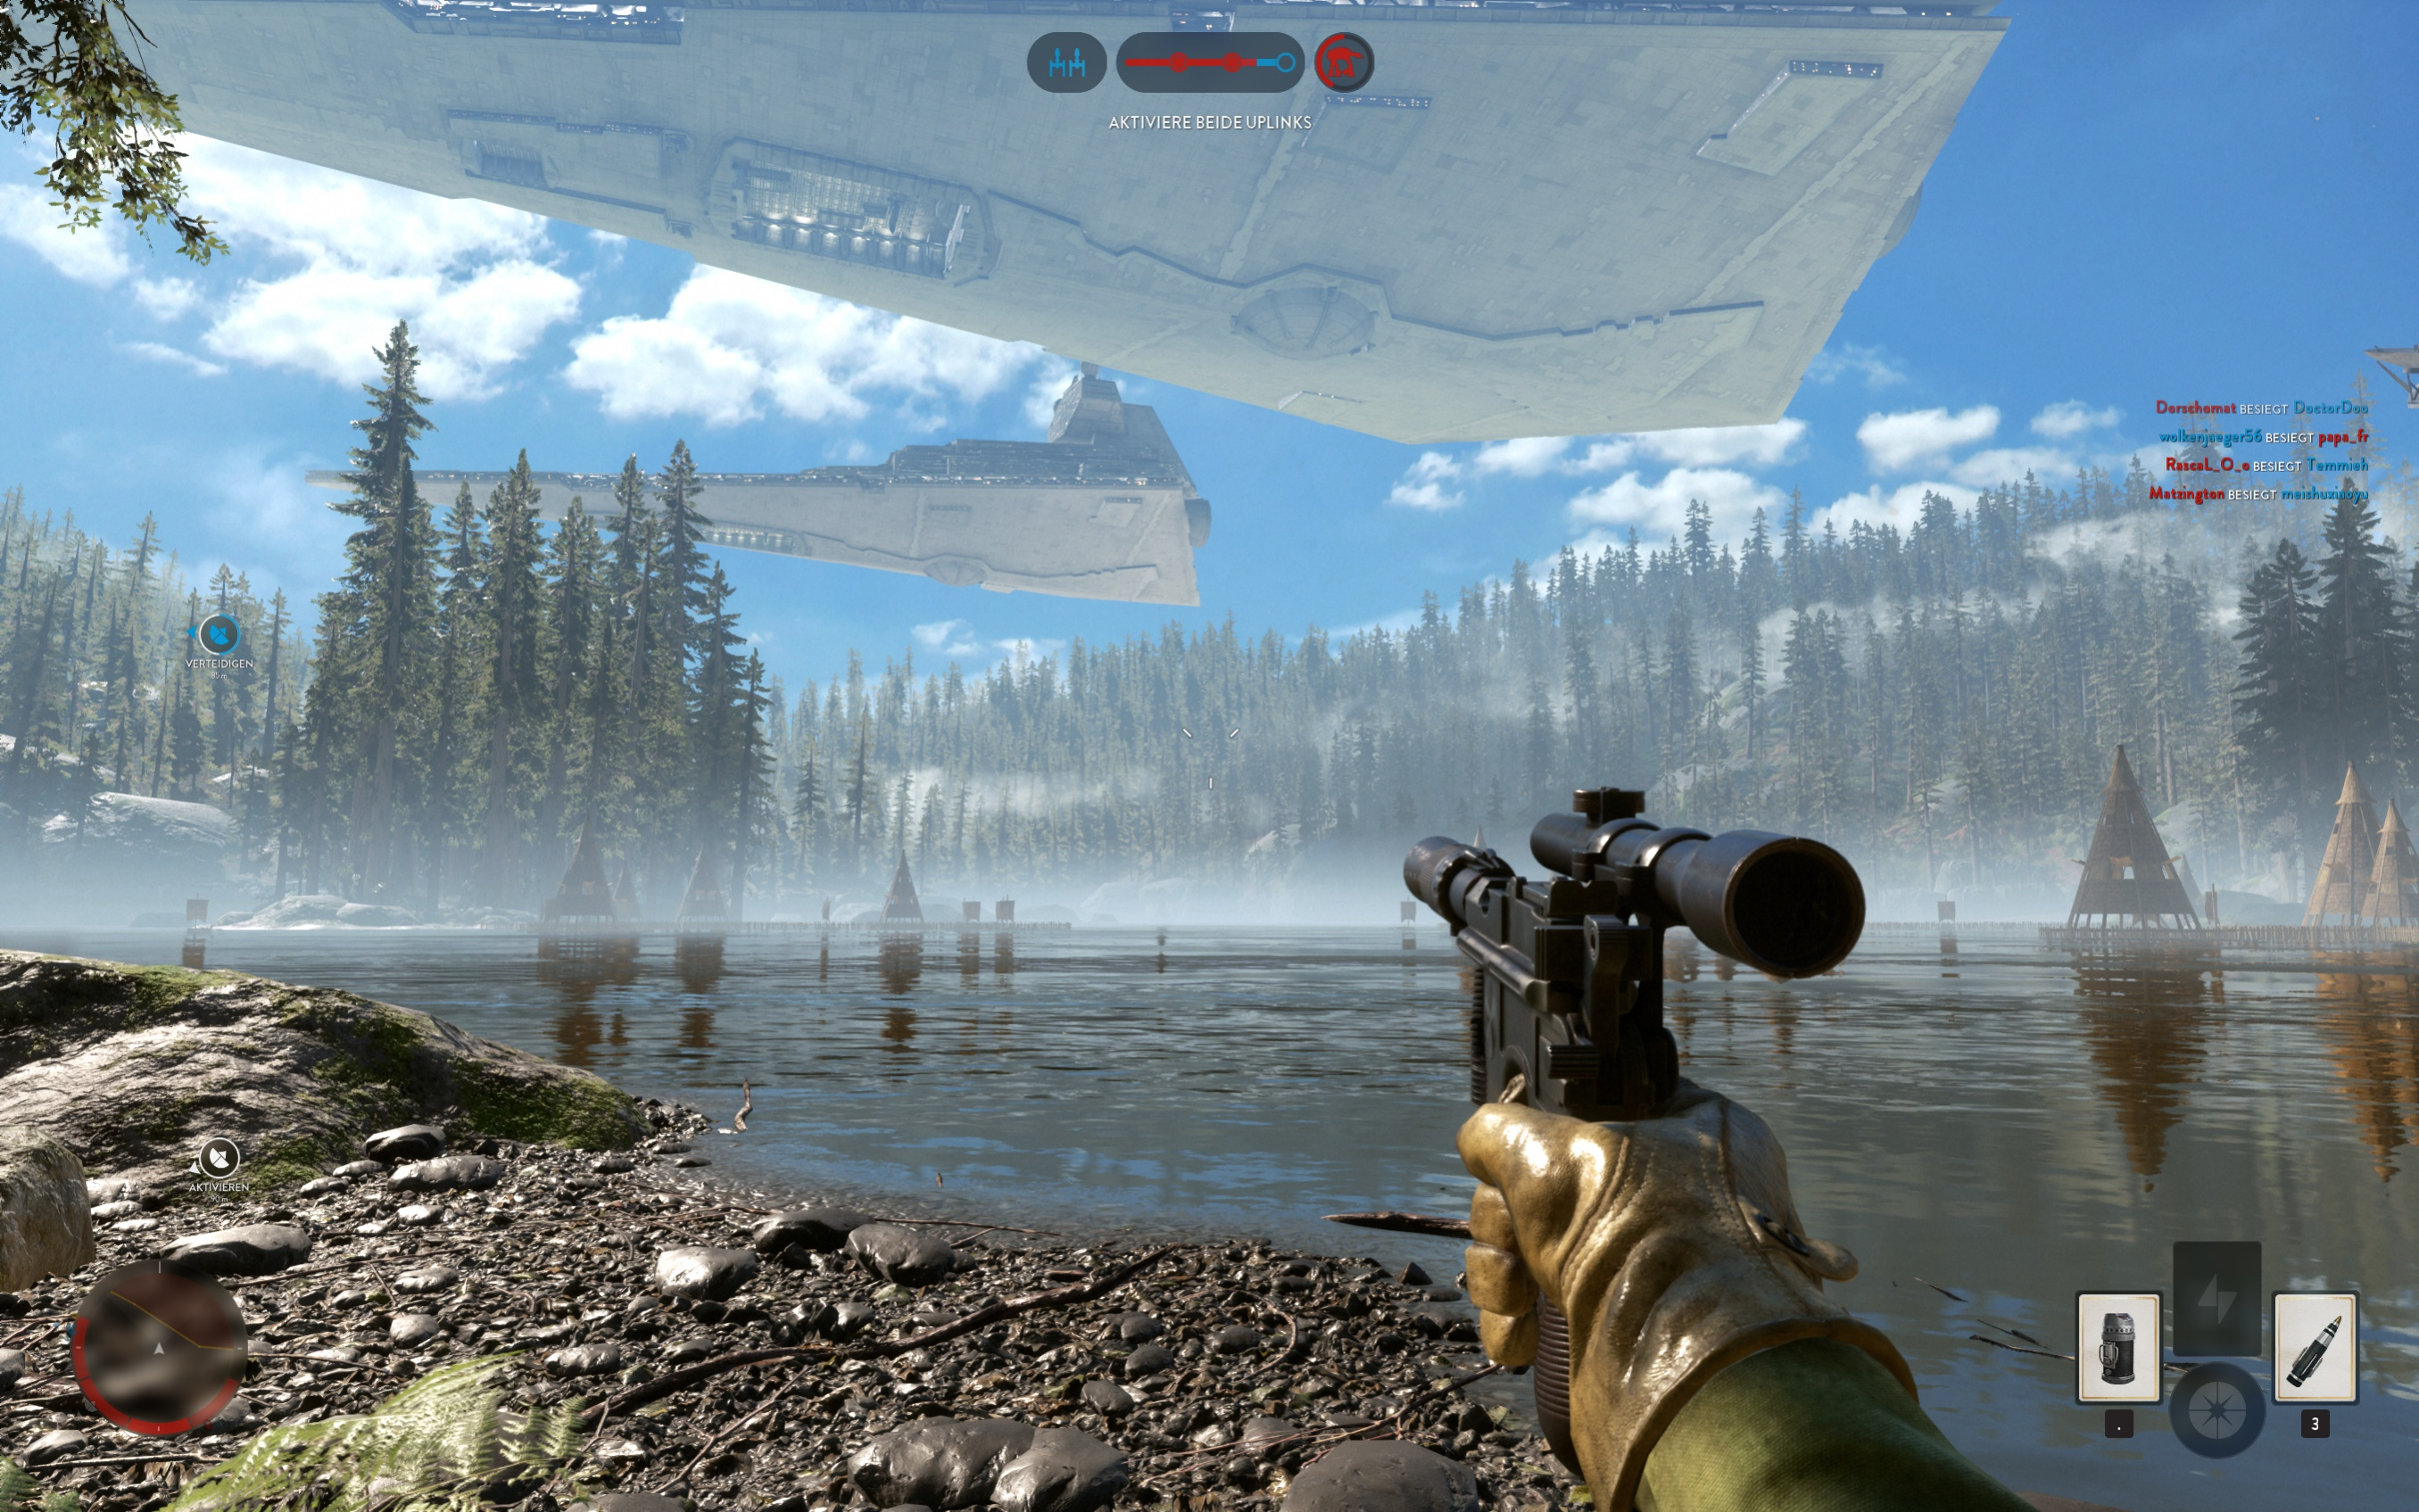 cod ghosts pc matchmaking [guide] lowering matchmaking max ping \steam\steamapps\common\call of duty ghosts\players2\ folder and open the mp configuration file.